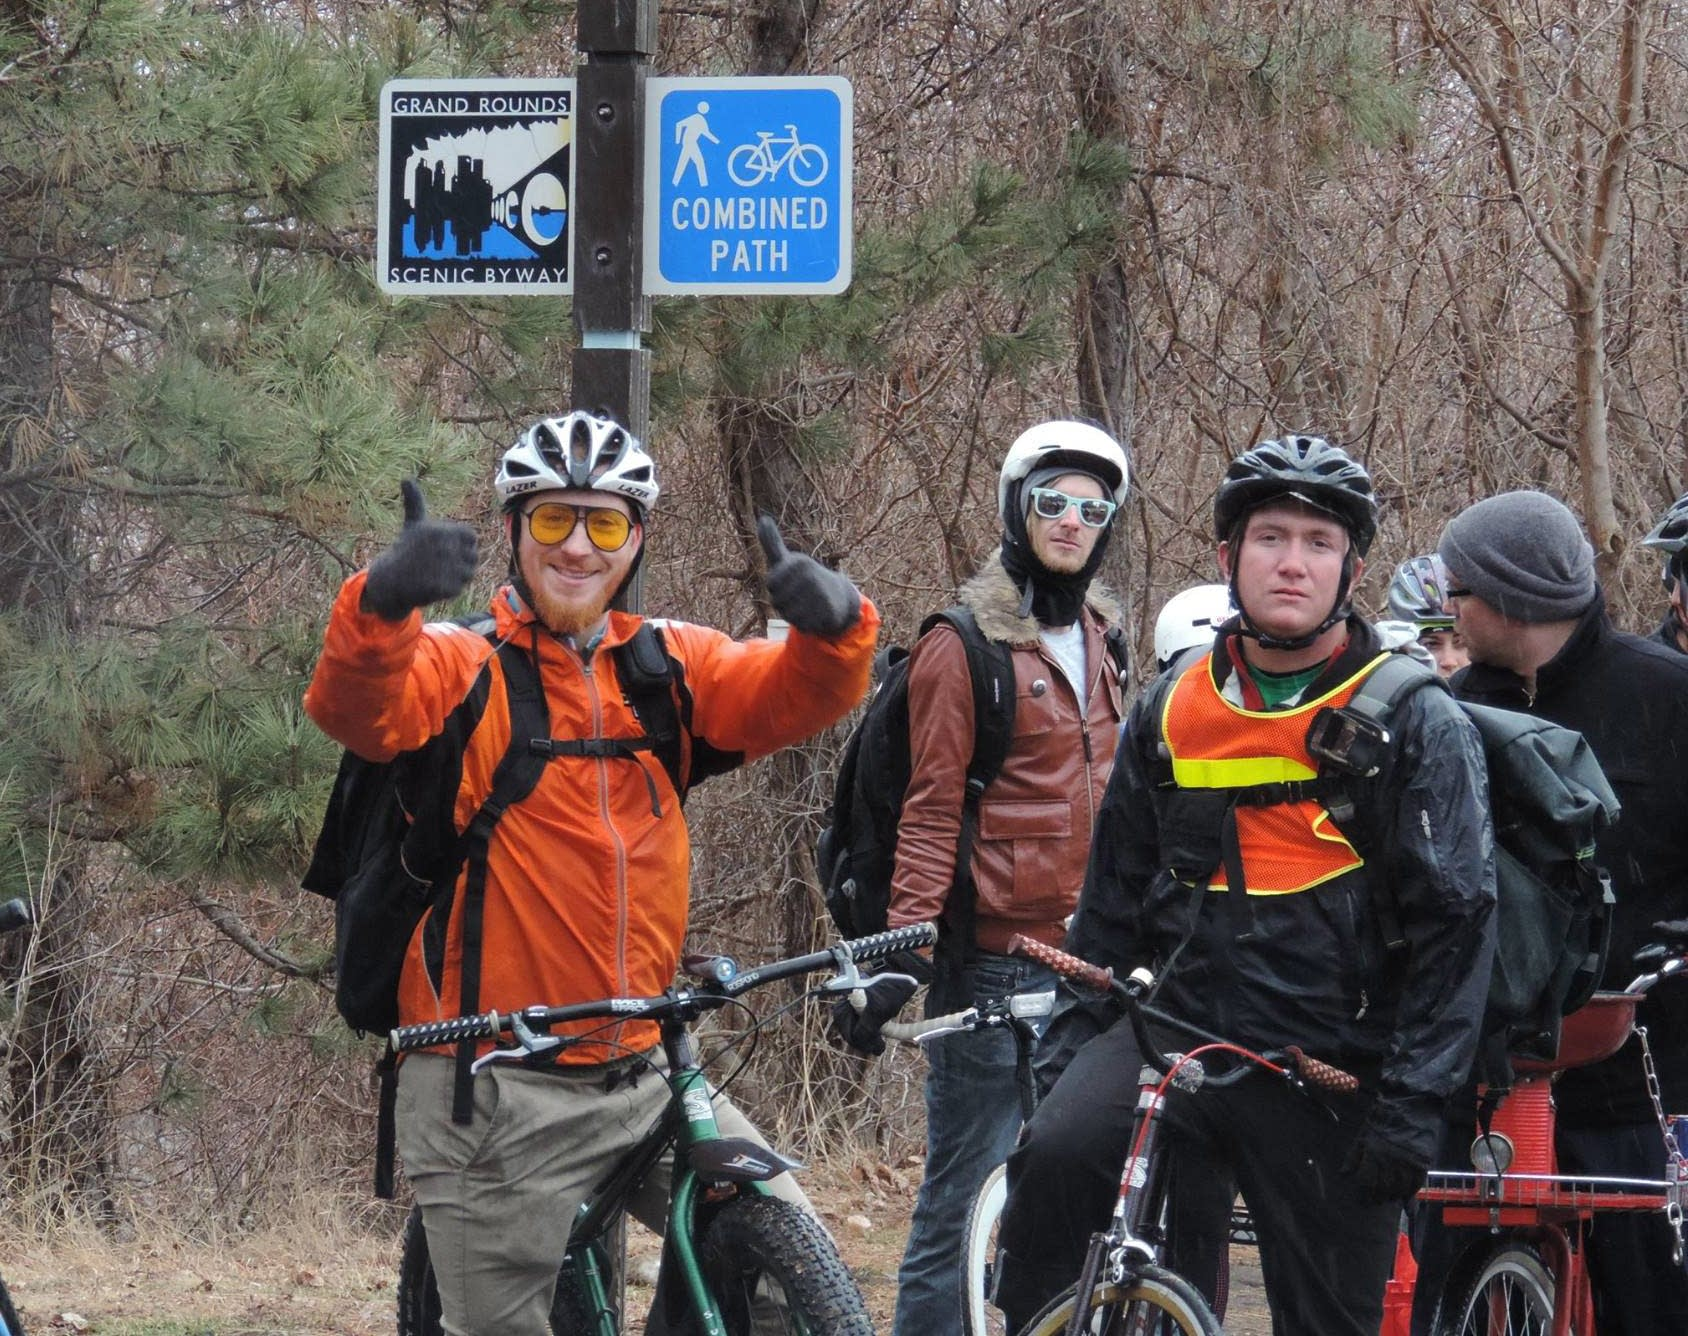 Patrick Stephenson of 30 Days of Biking